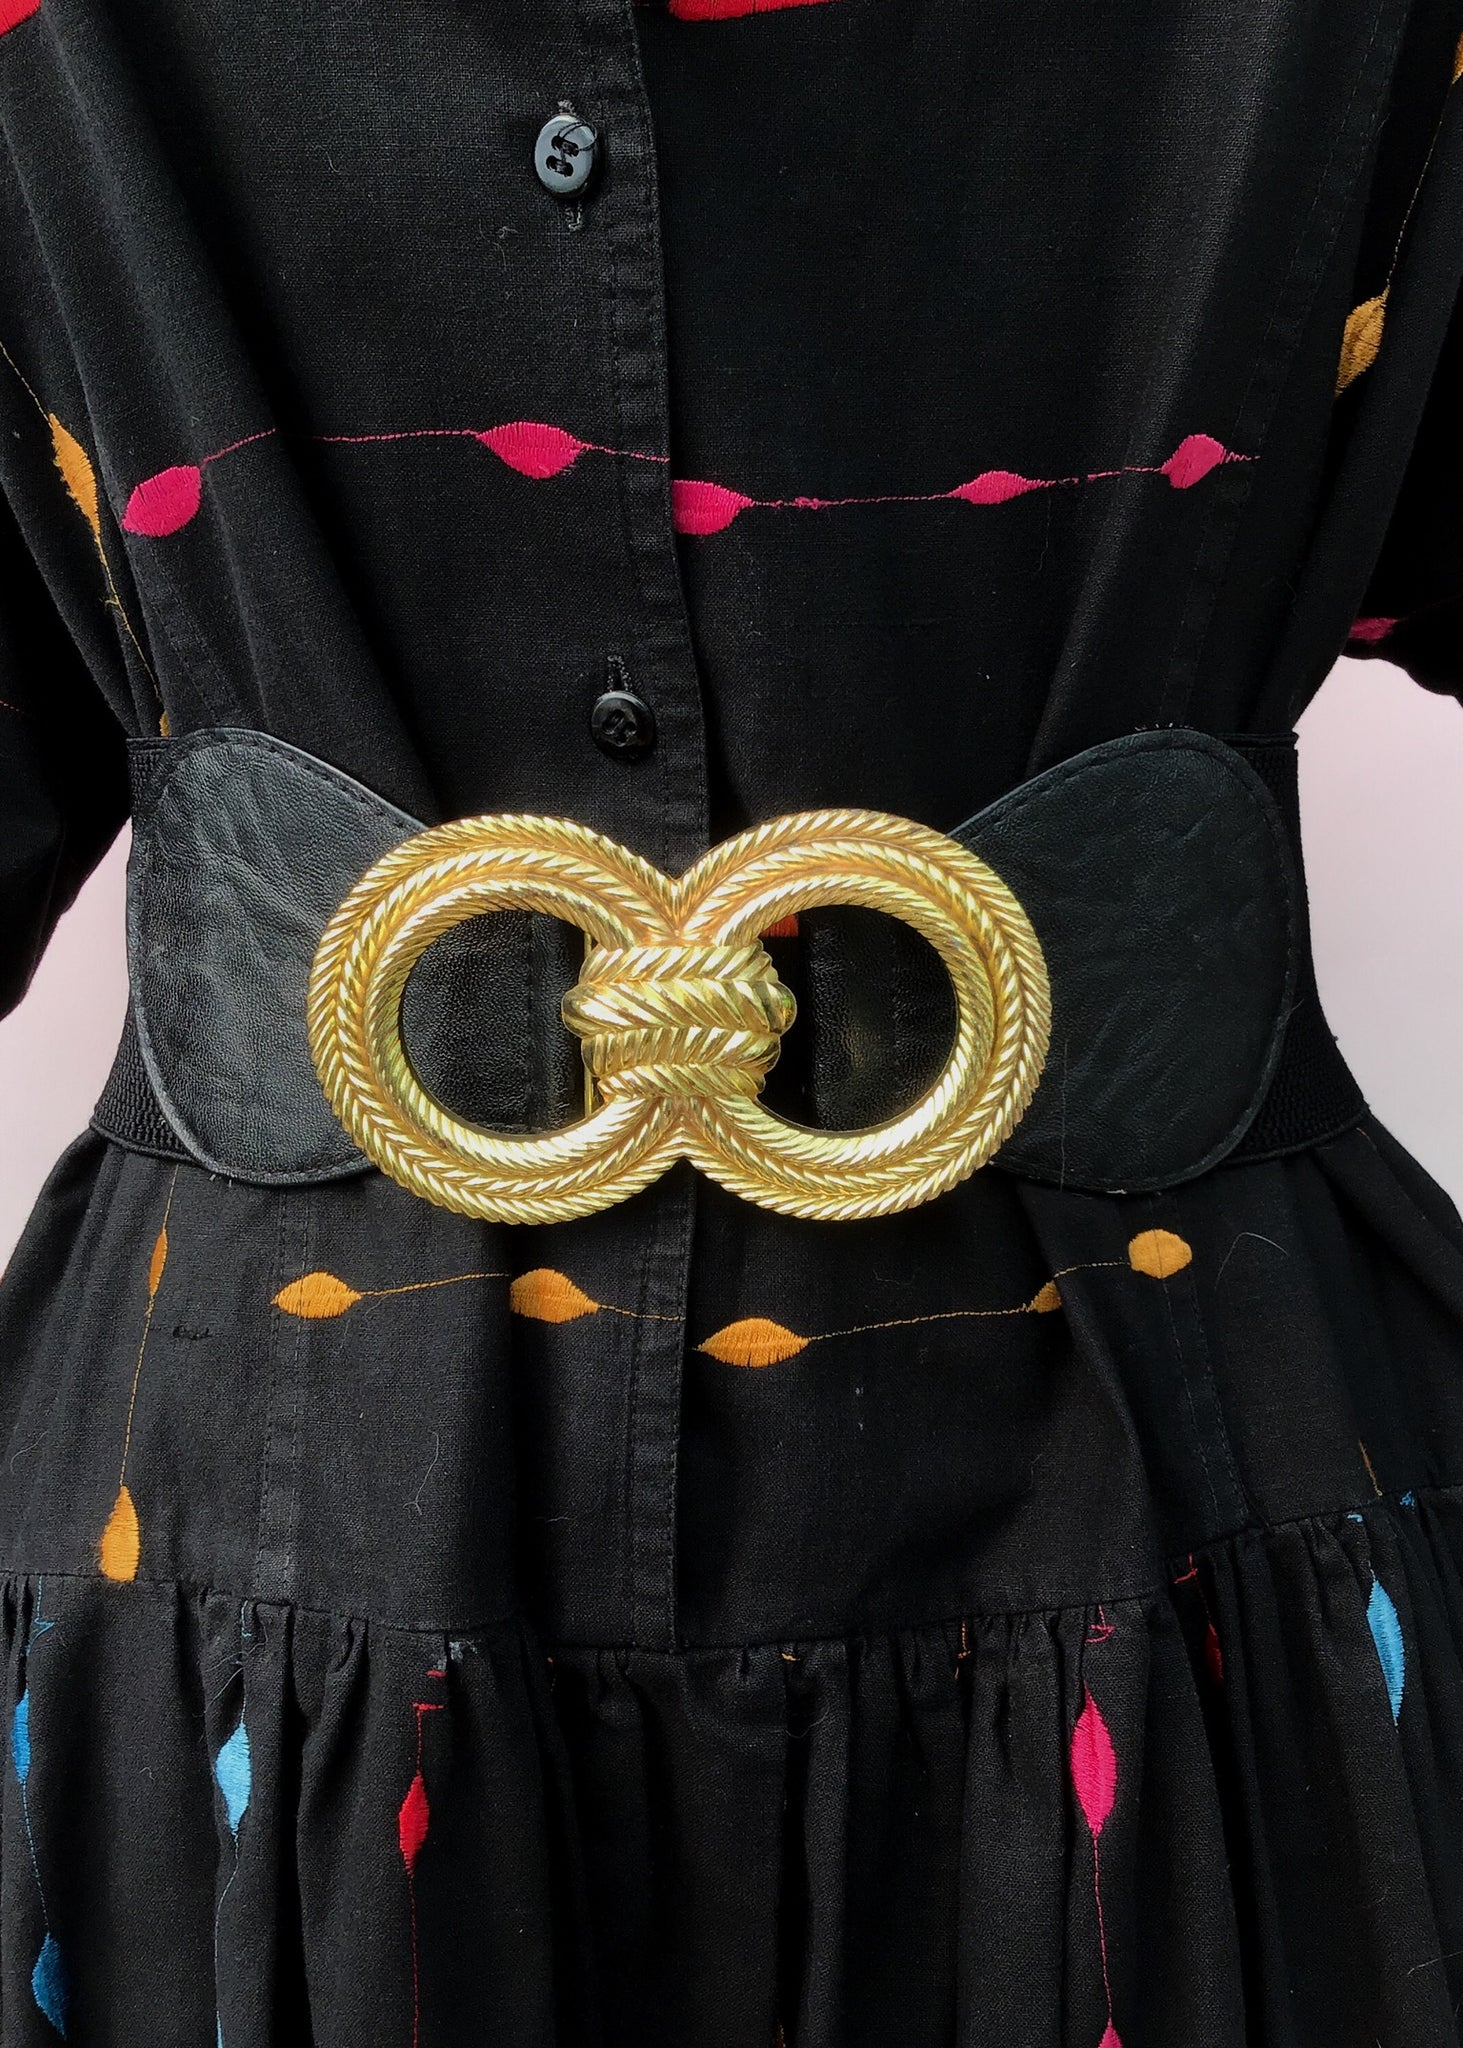 1990s Elasticated Black Cincher Belt With Gold Rope Buckle